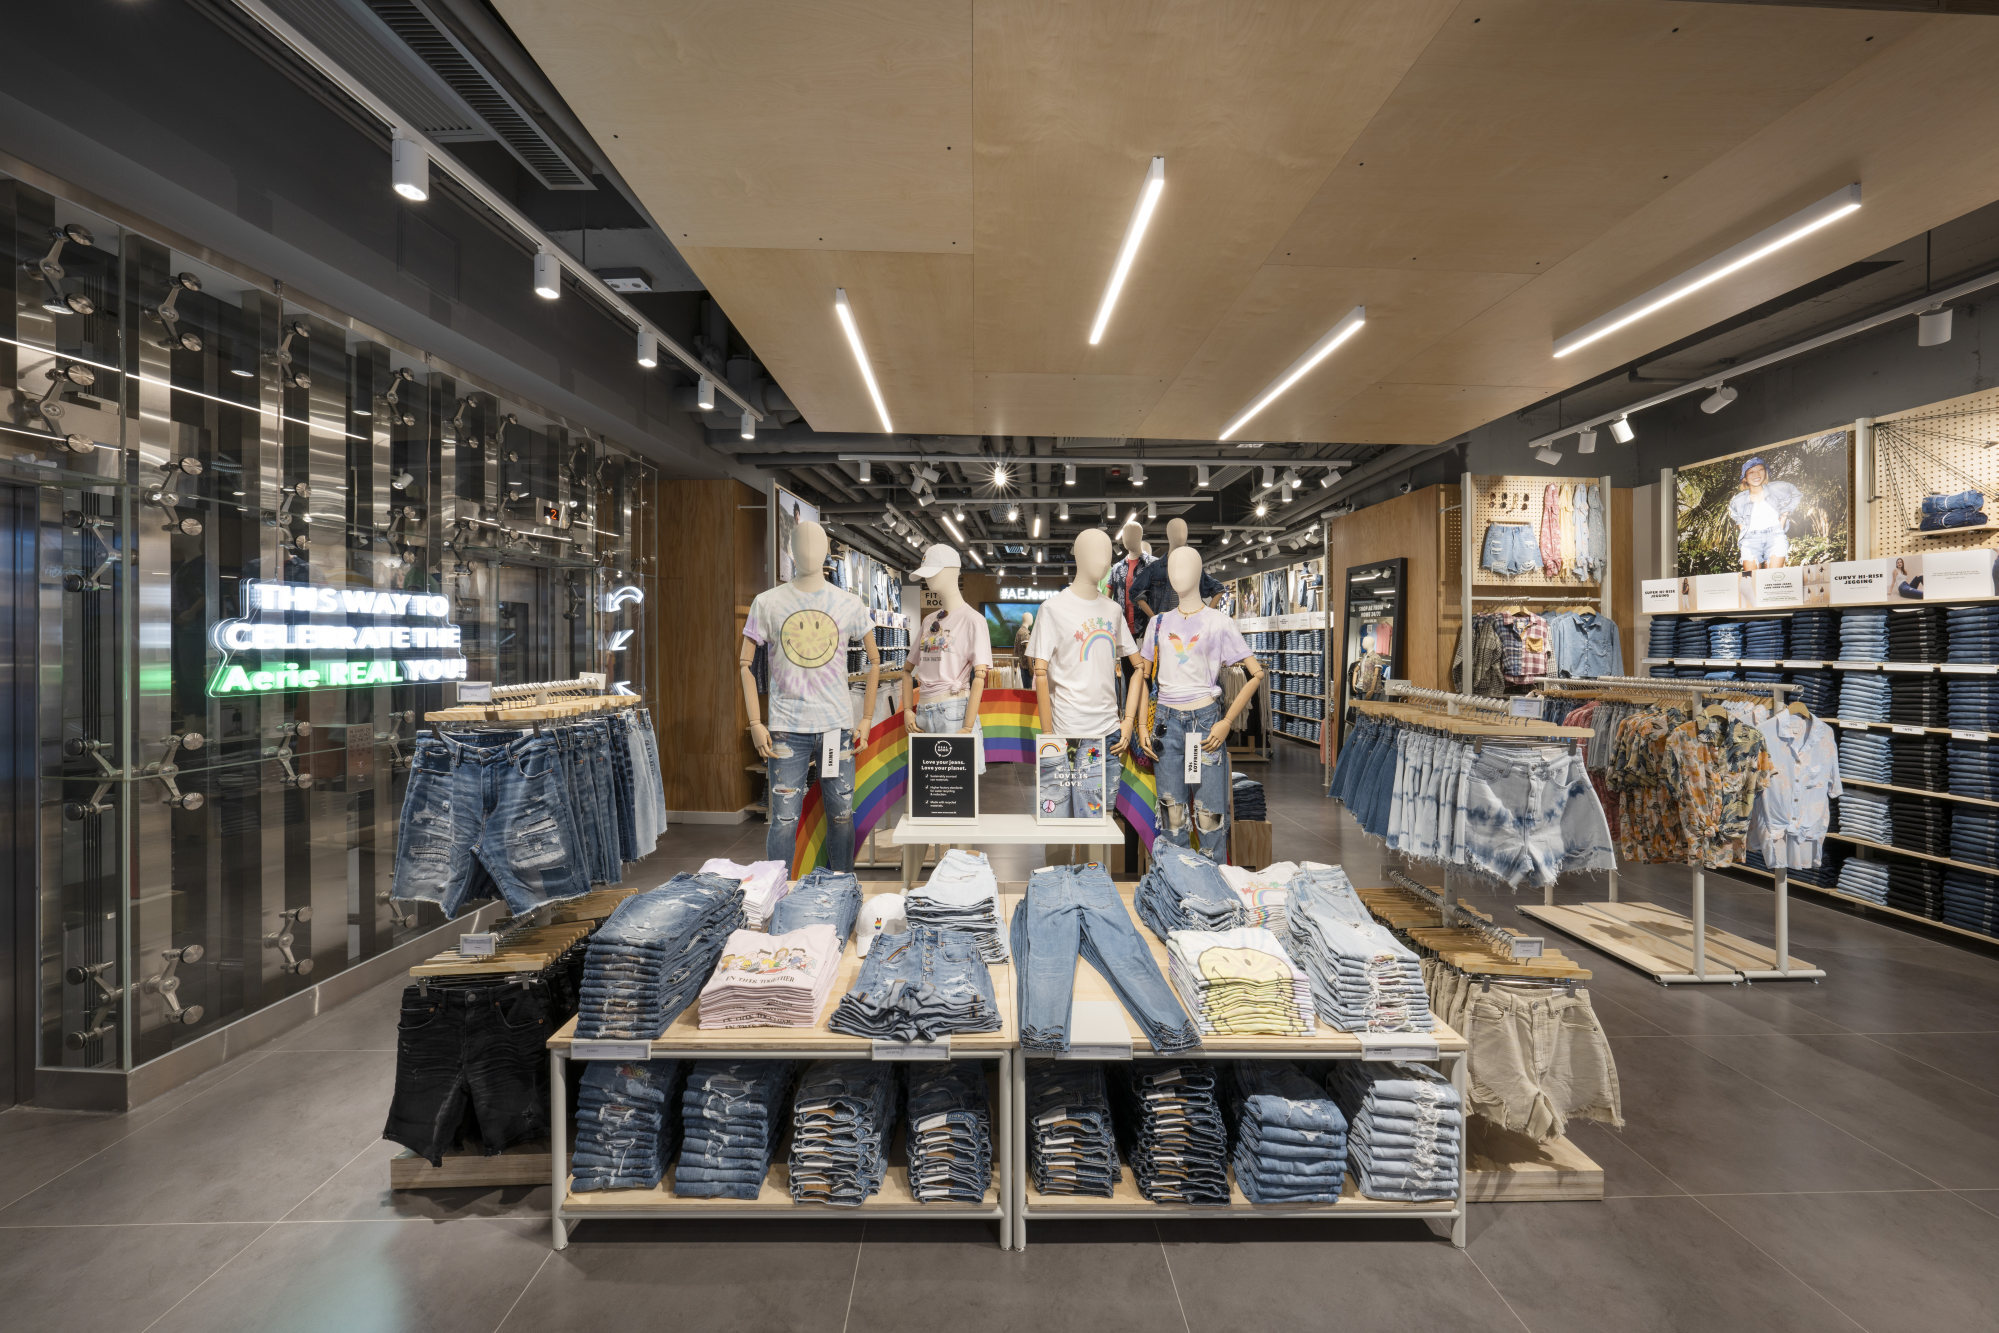 The interior of the American Eagle store in Central.